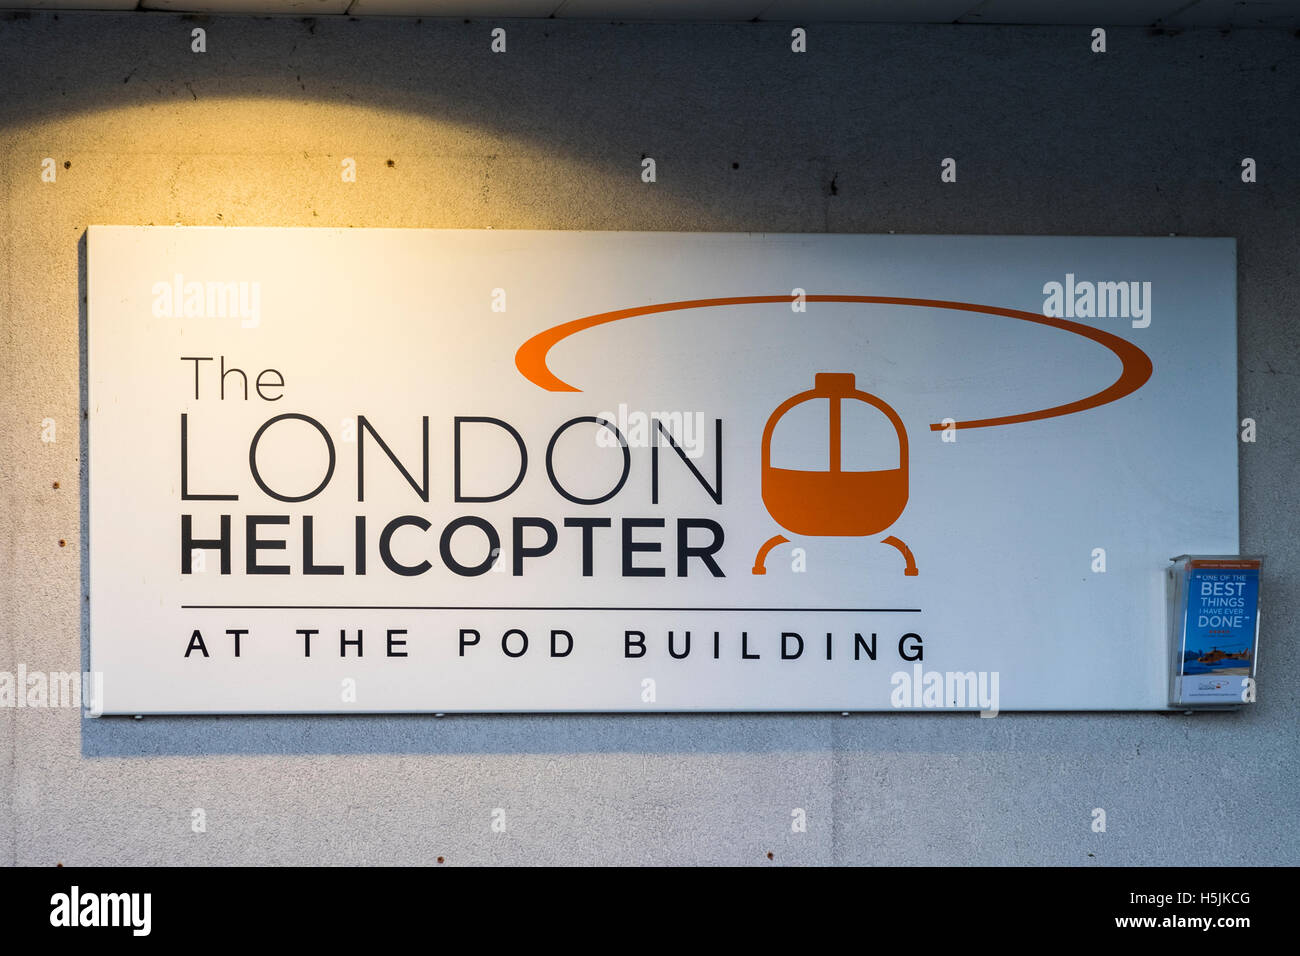 London Helicopter at the Pod building, Battersea, London, England, U.K. - Stock Image